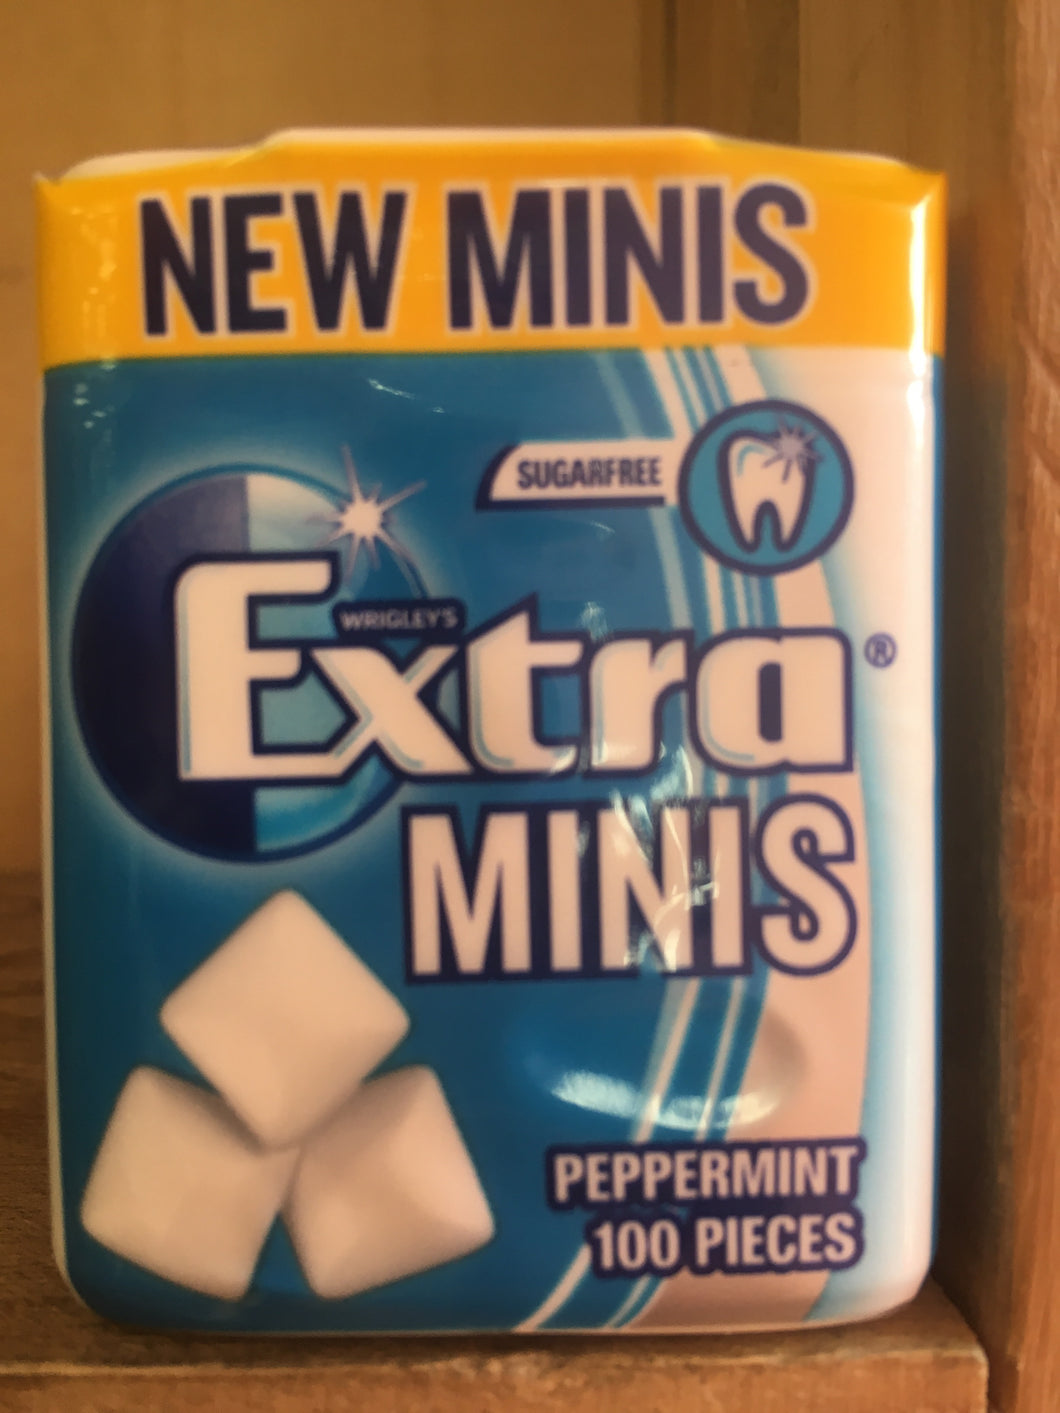 Wrigley's Extra Minis Peppermint Chewing Gum x100 Pieces